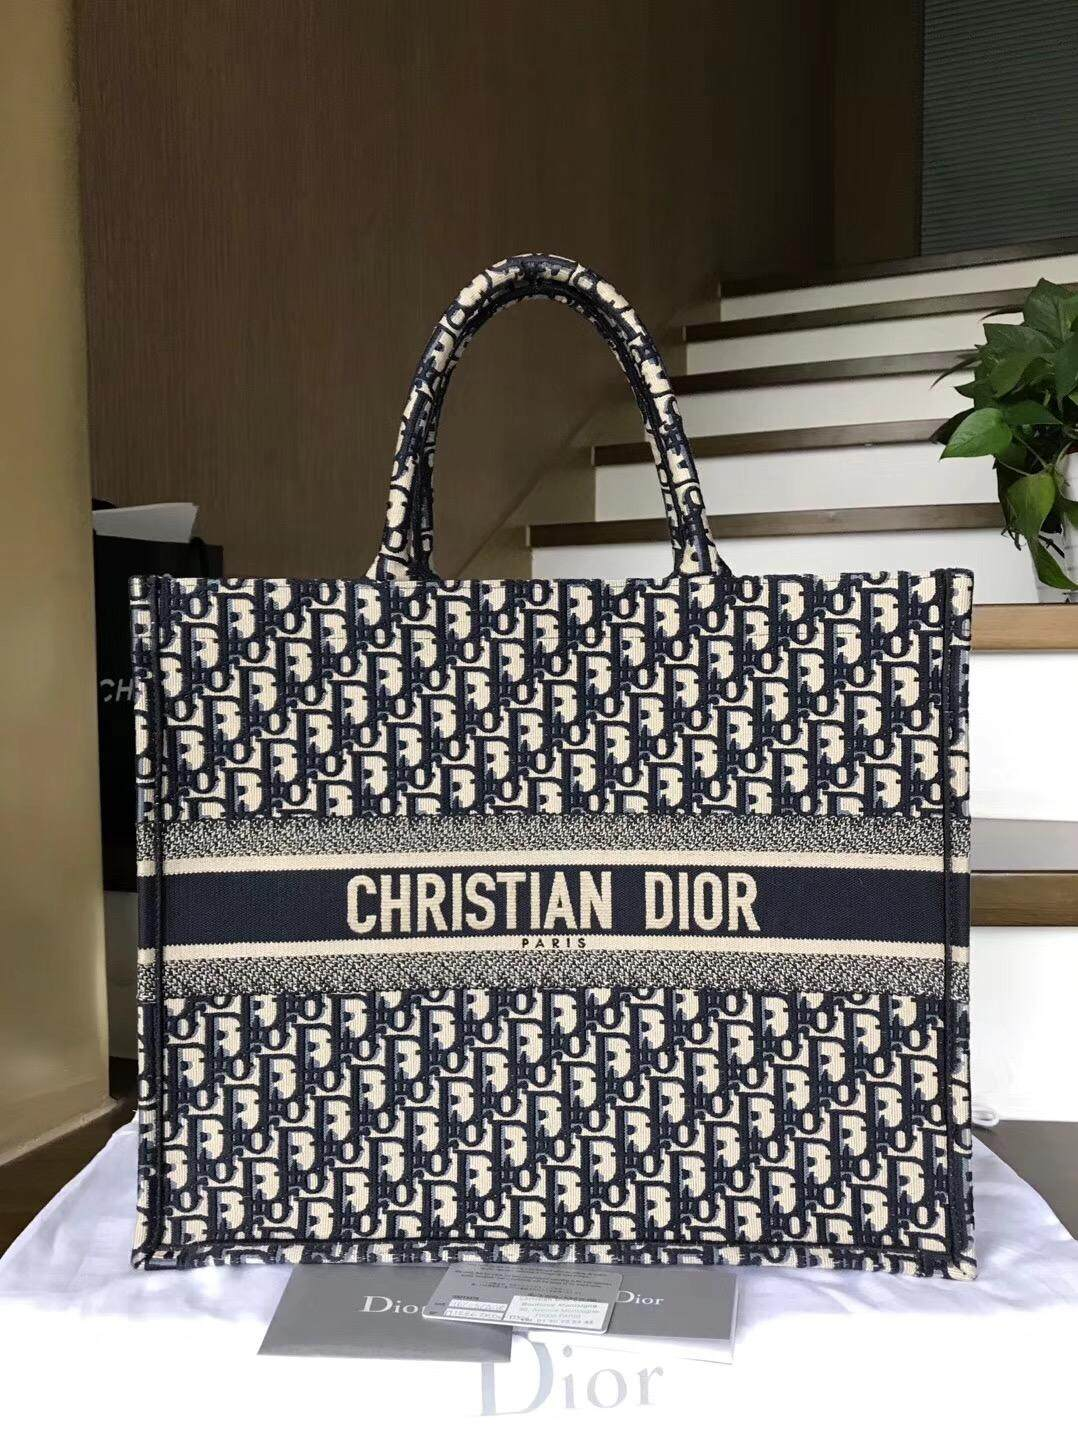 Print 100% of original DIORs 2,019 bags of old flowers Canvas bag Size :41.5 * 32 * 5cm Printed letter canvas M1286ZRIW_M928